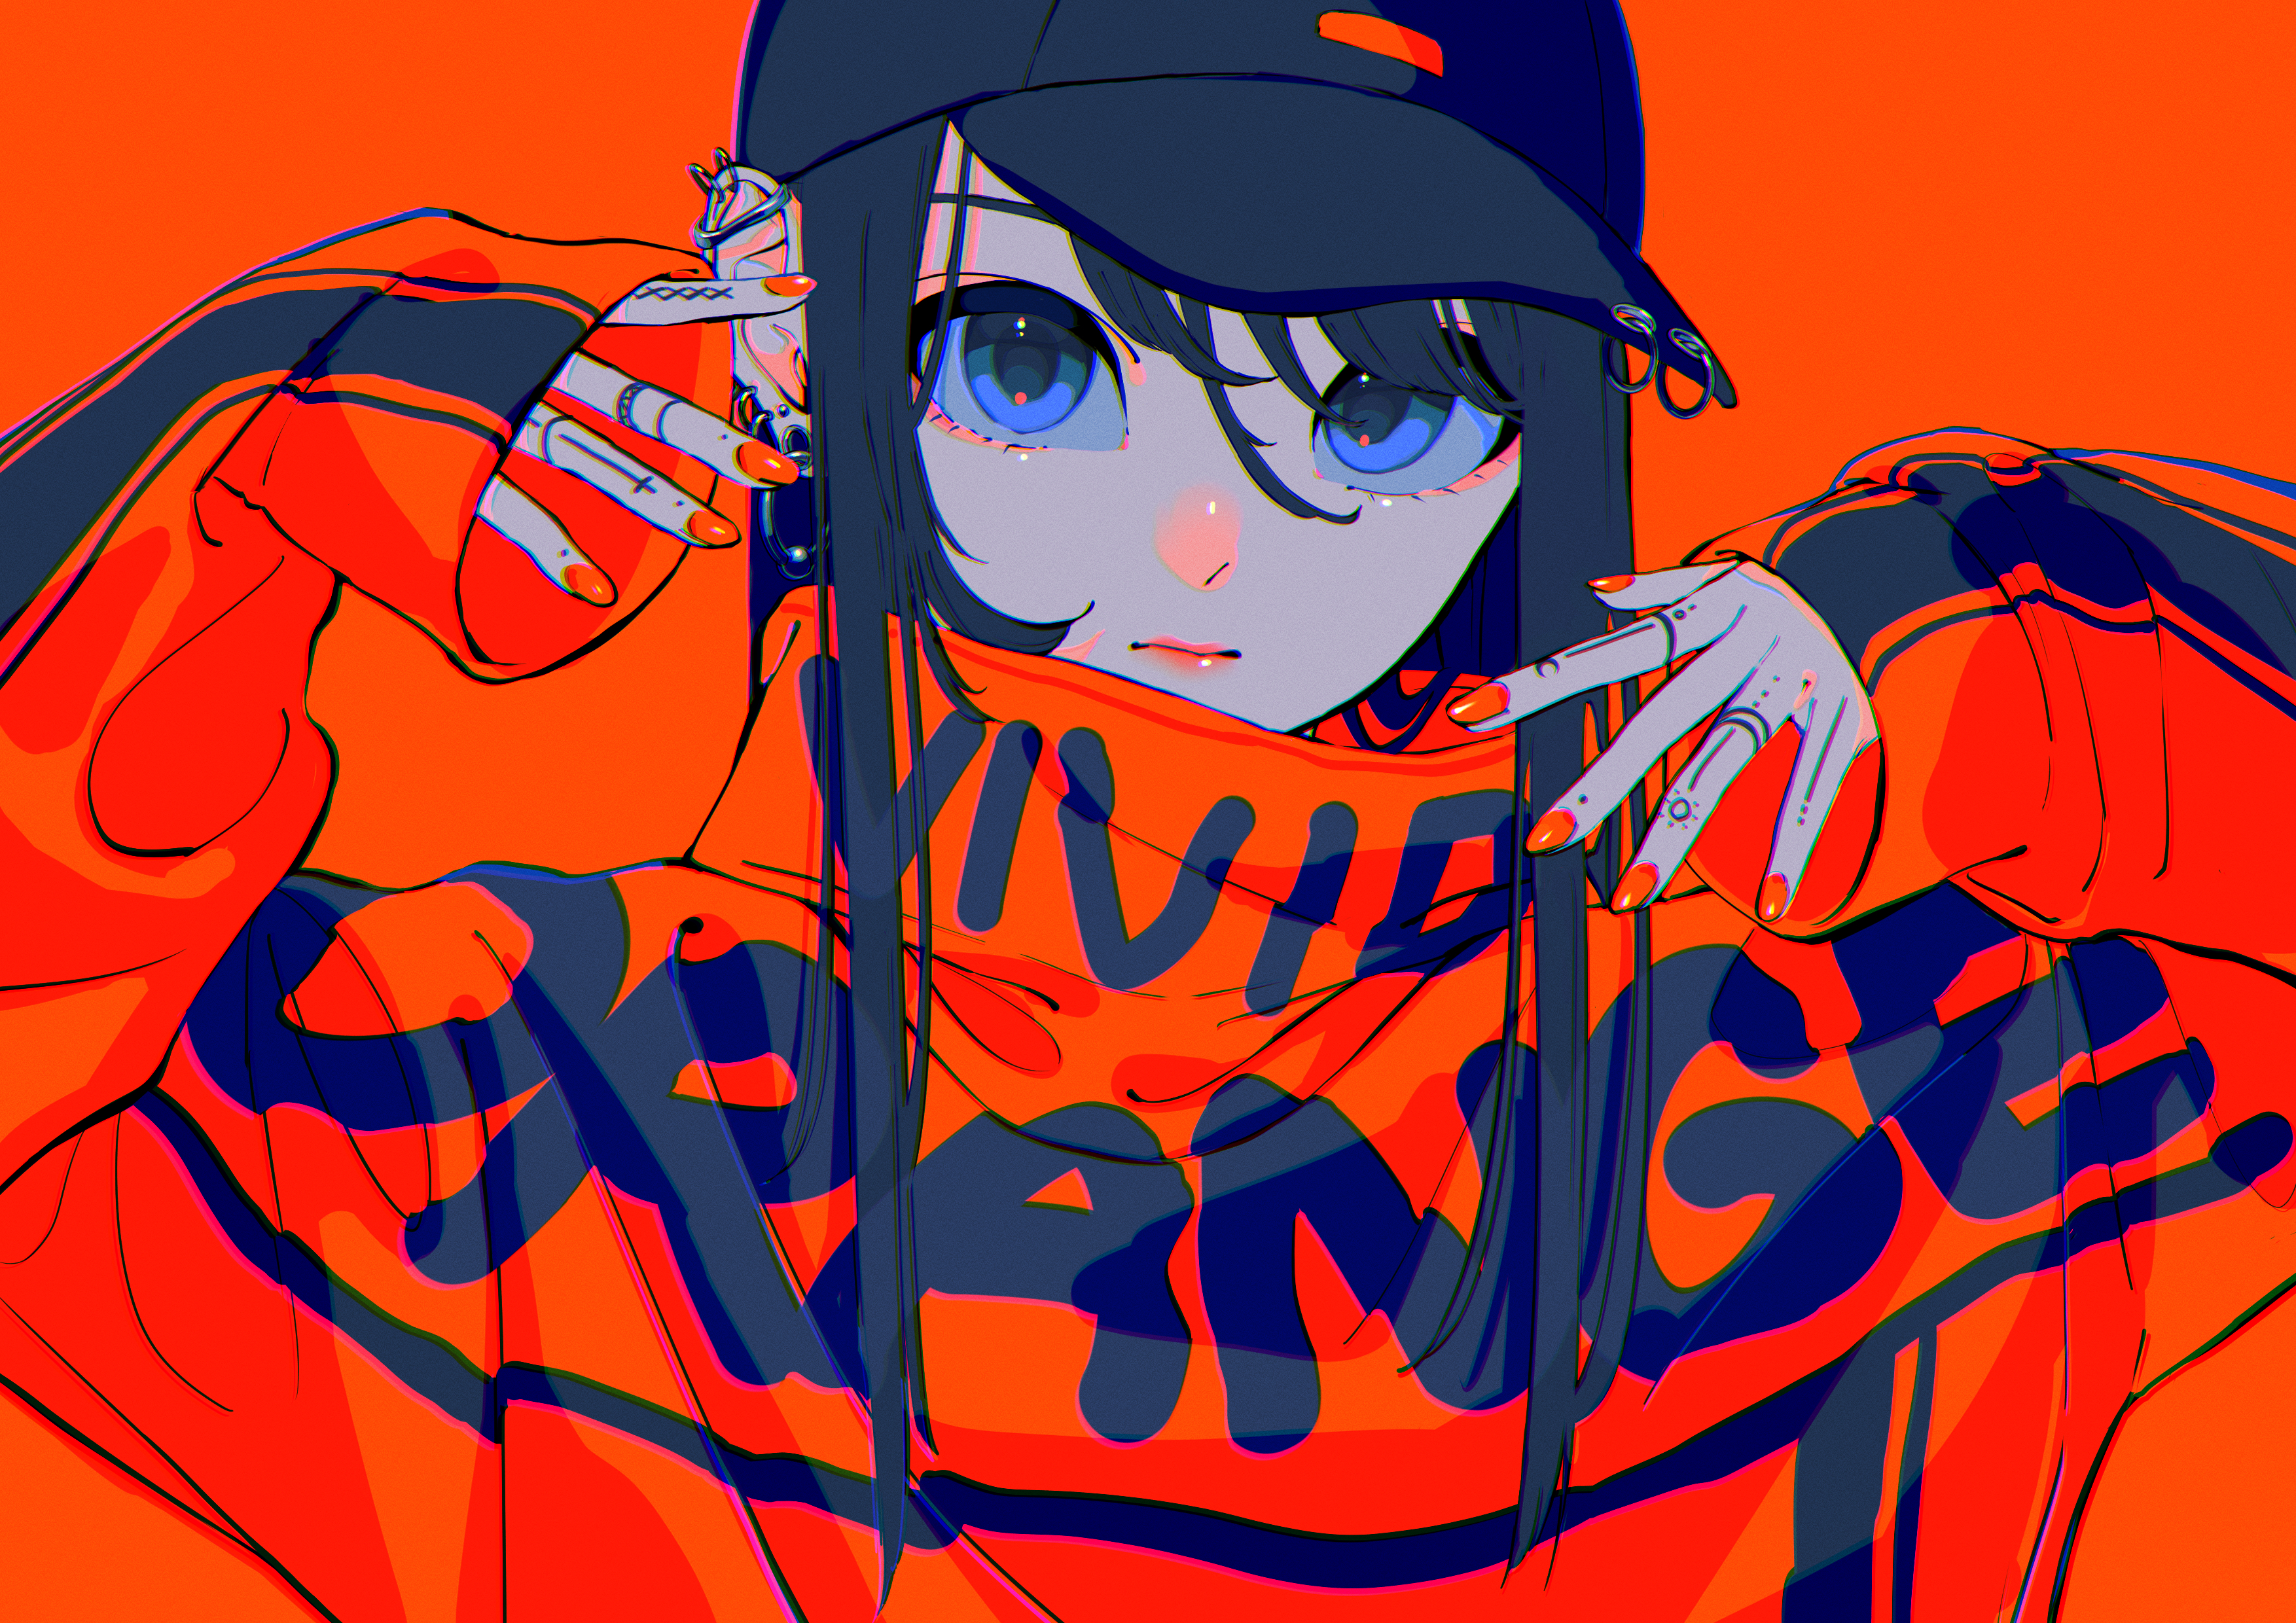 Anime Anime Girls Red Background Baseball Cap Blue Eyes Looking At Viewer Red Nails Long Nails Pierc 3508x2480